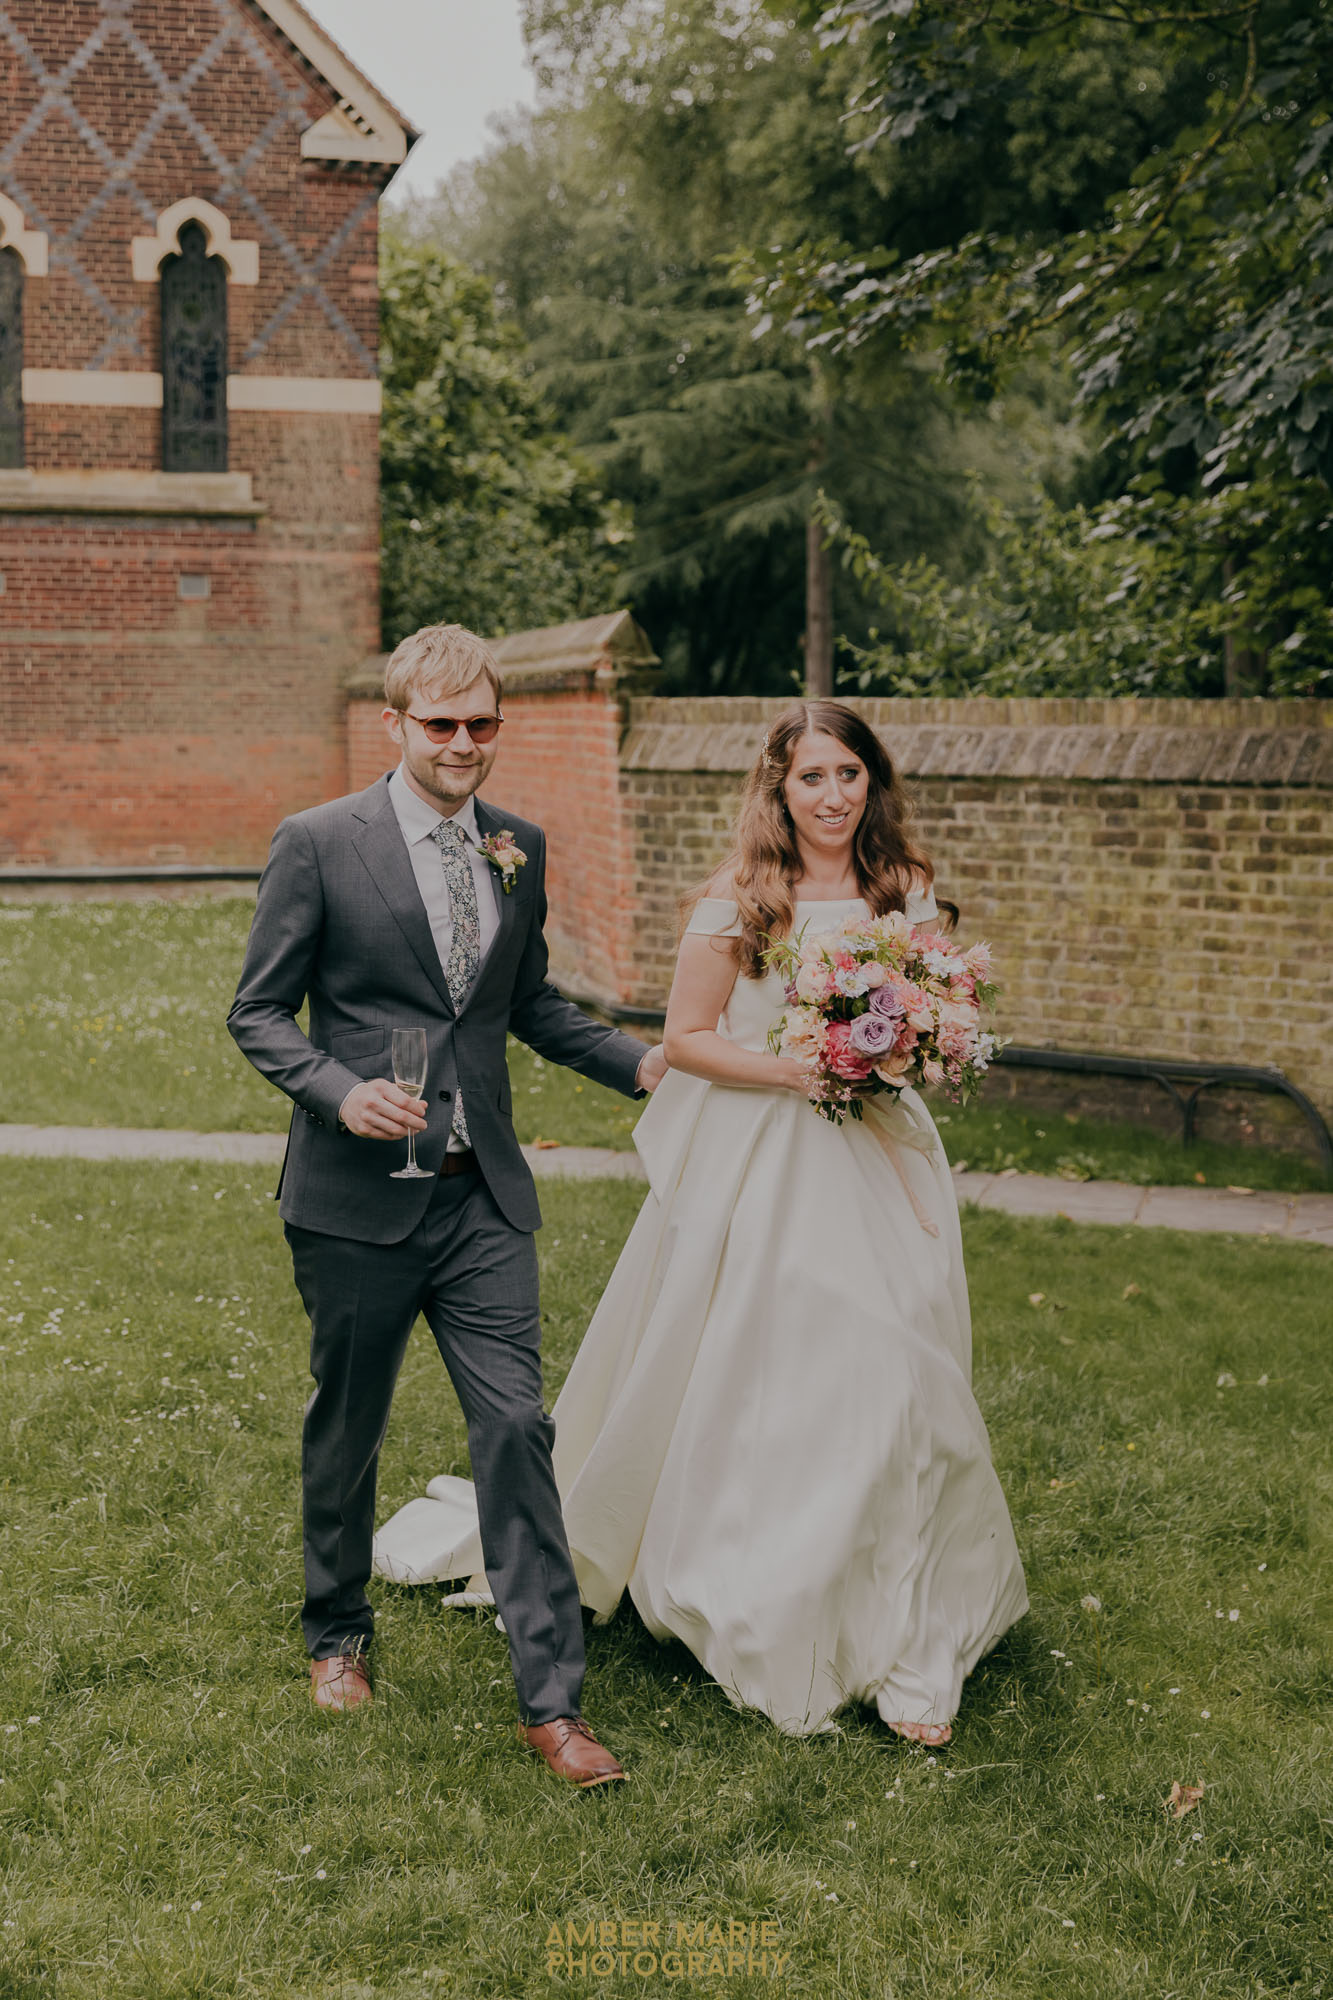 natural wedding photography of bride and groom